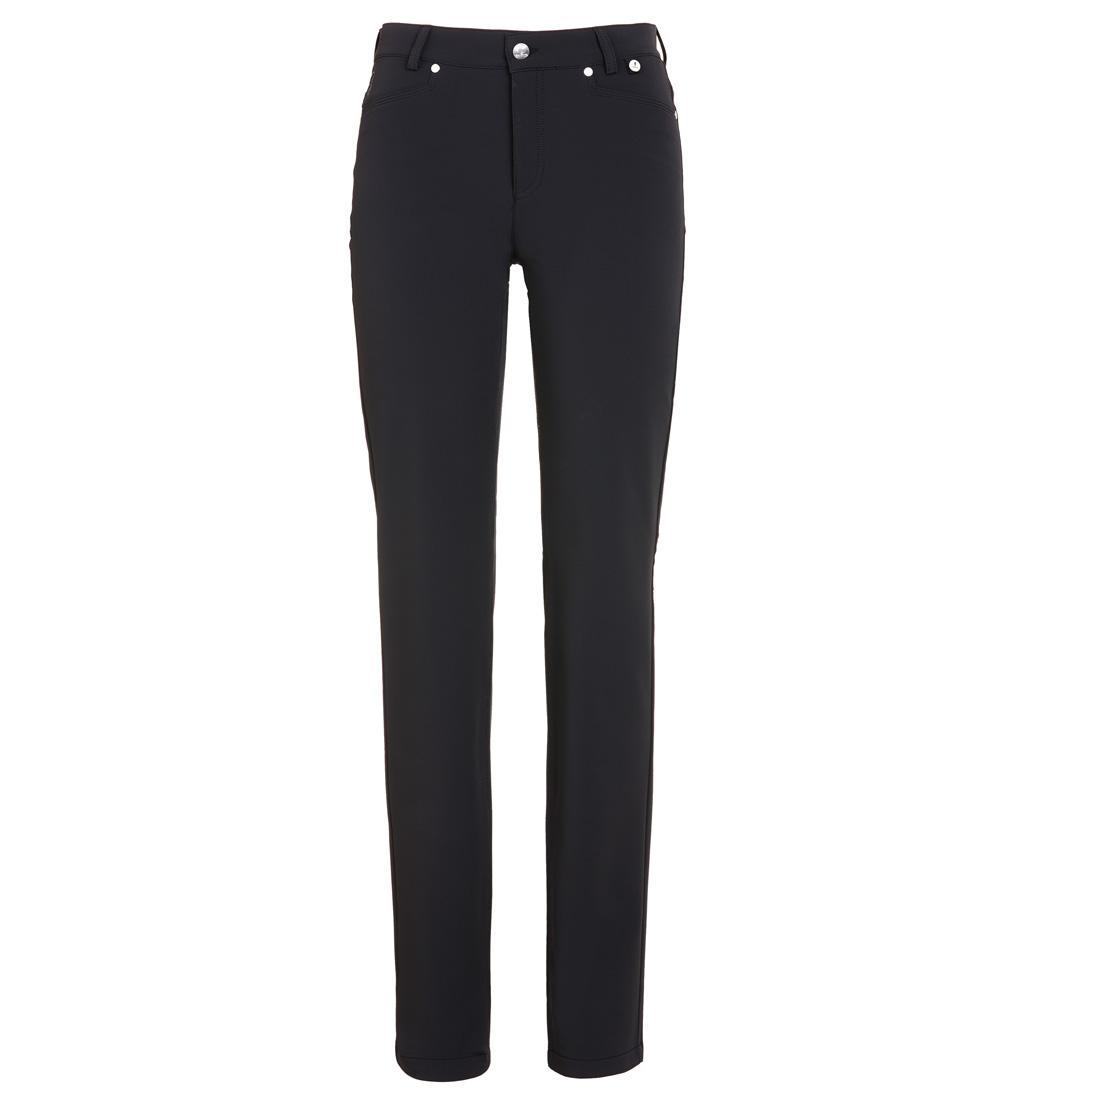 4-way stretch thermal trousers  Grey